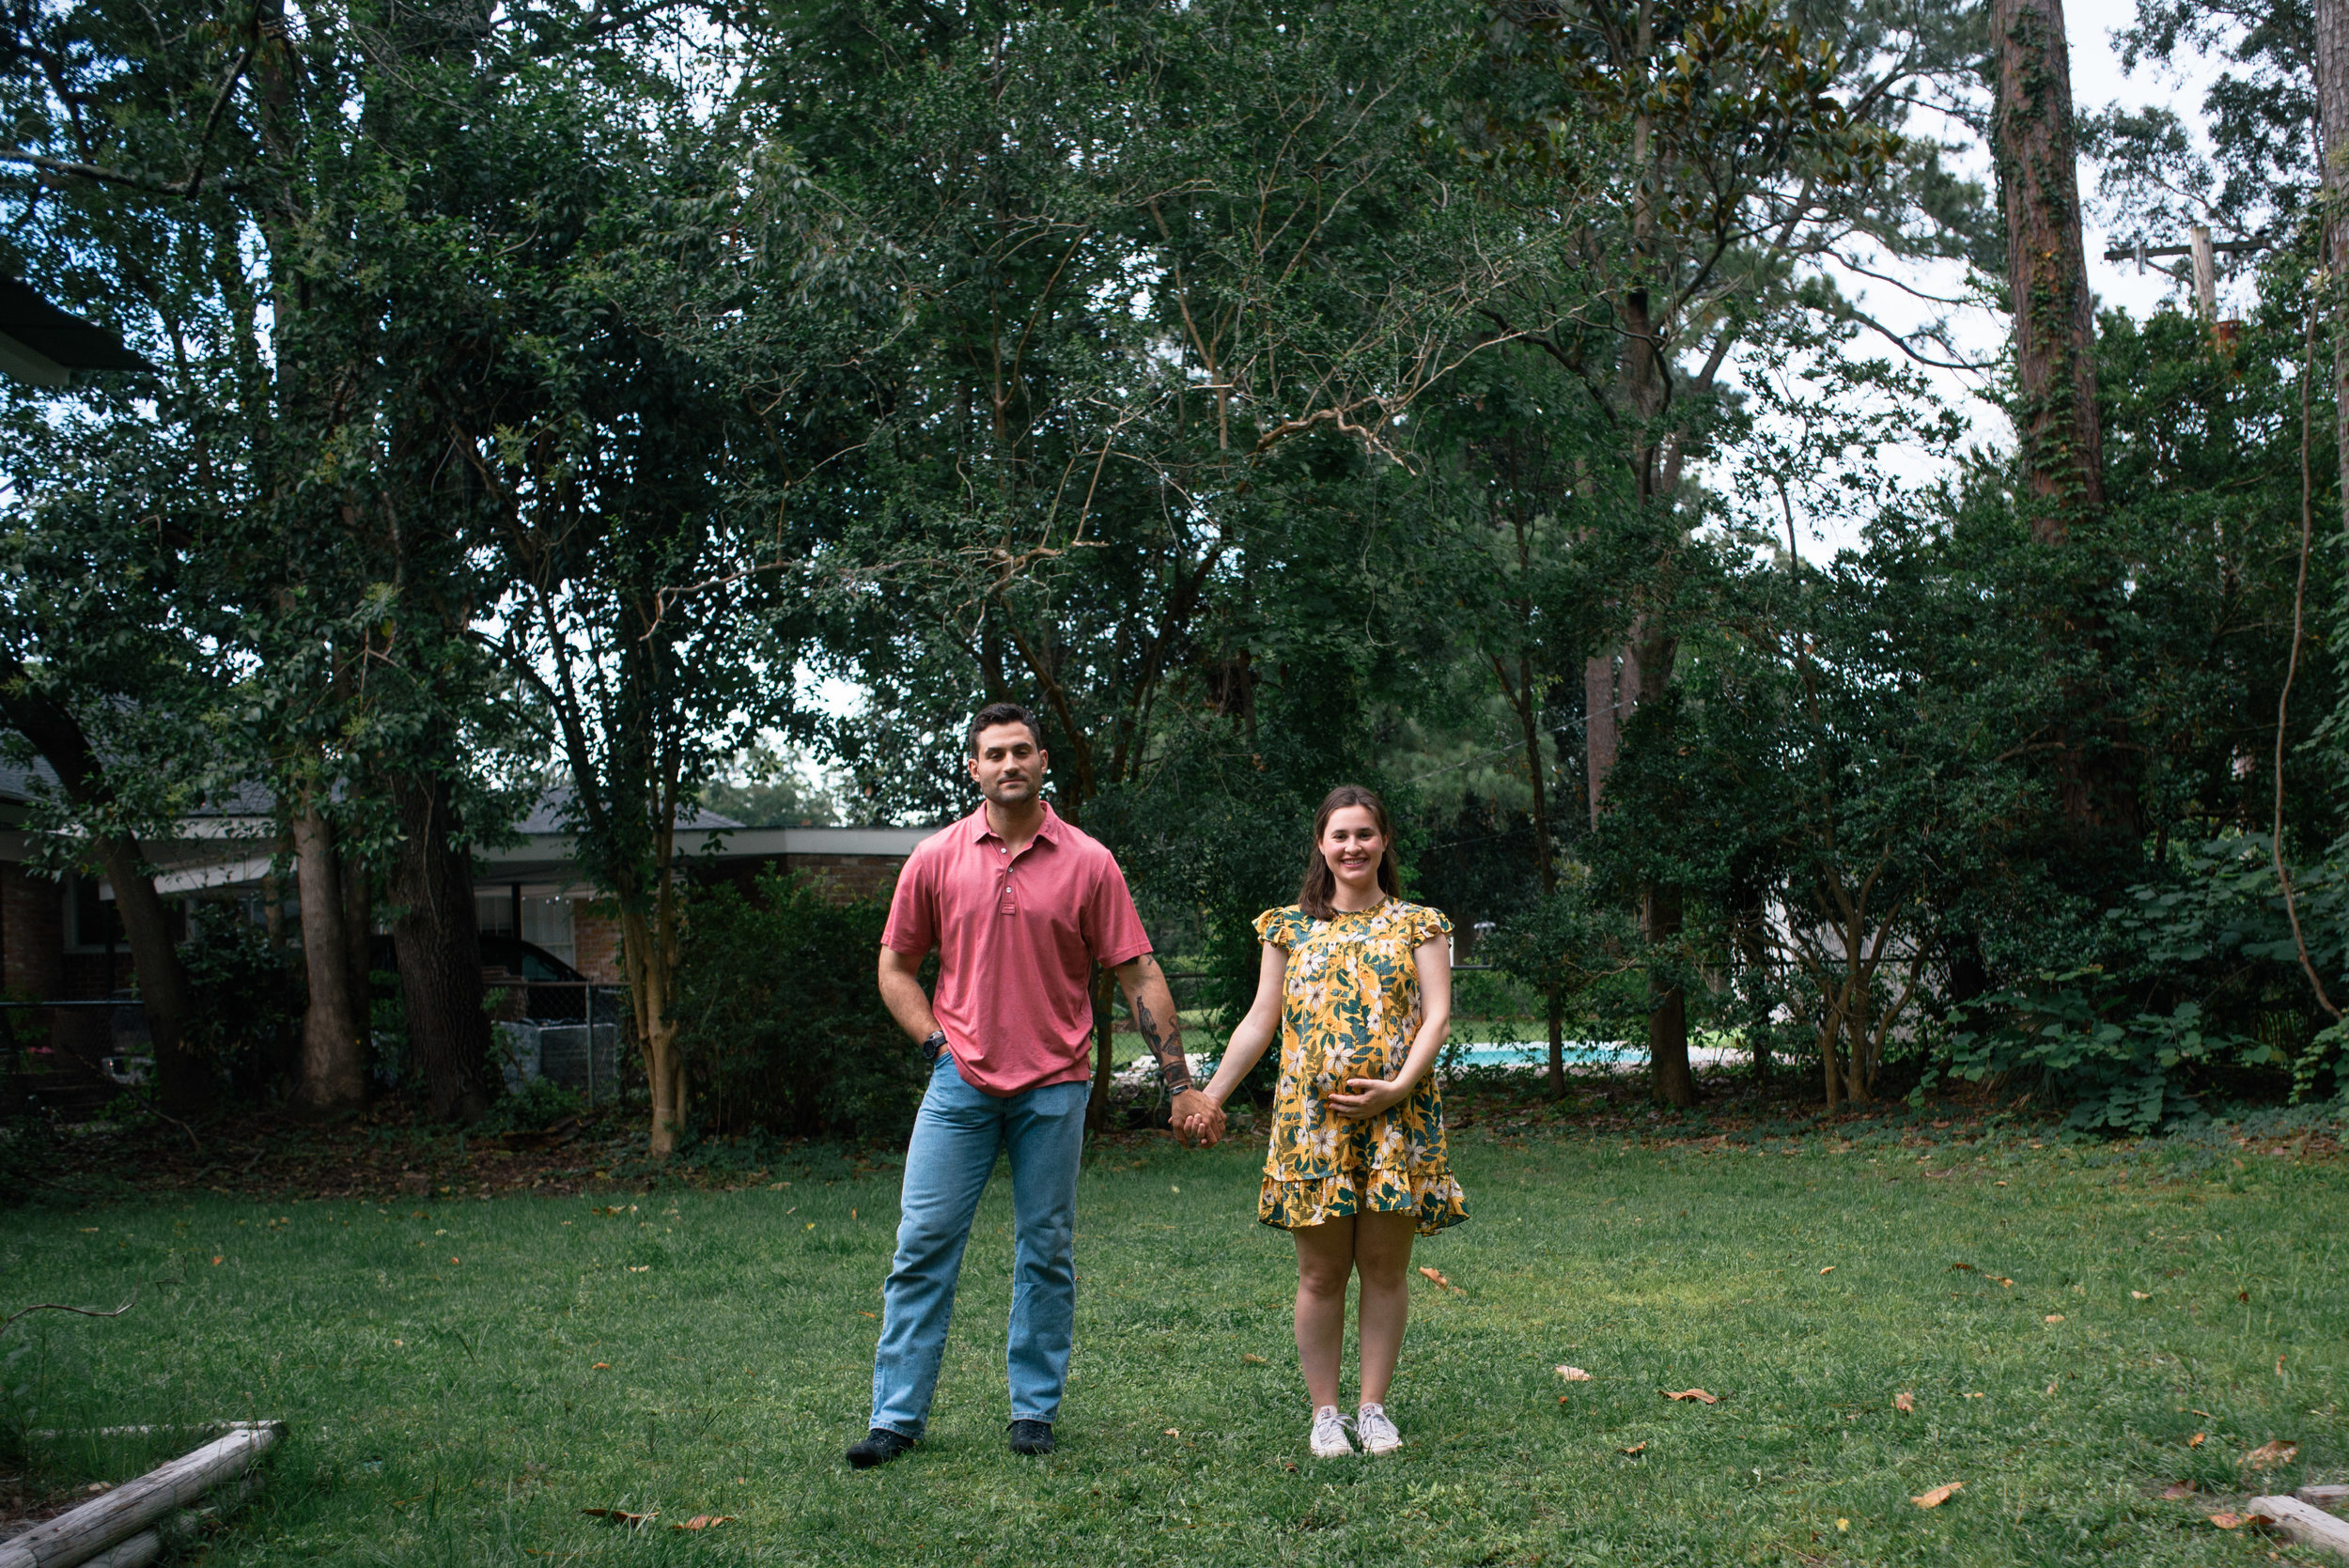 ellie-and-anthony-maternity-photos-june-2018 (56 of 189).jpg